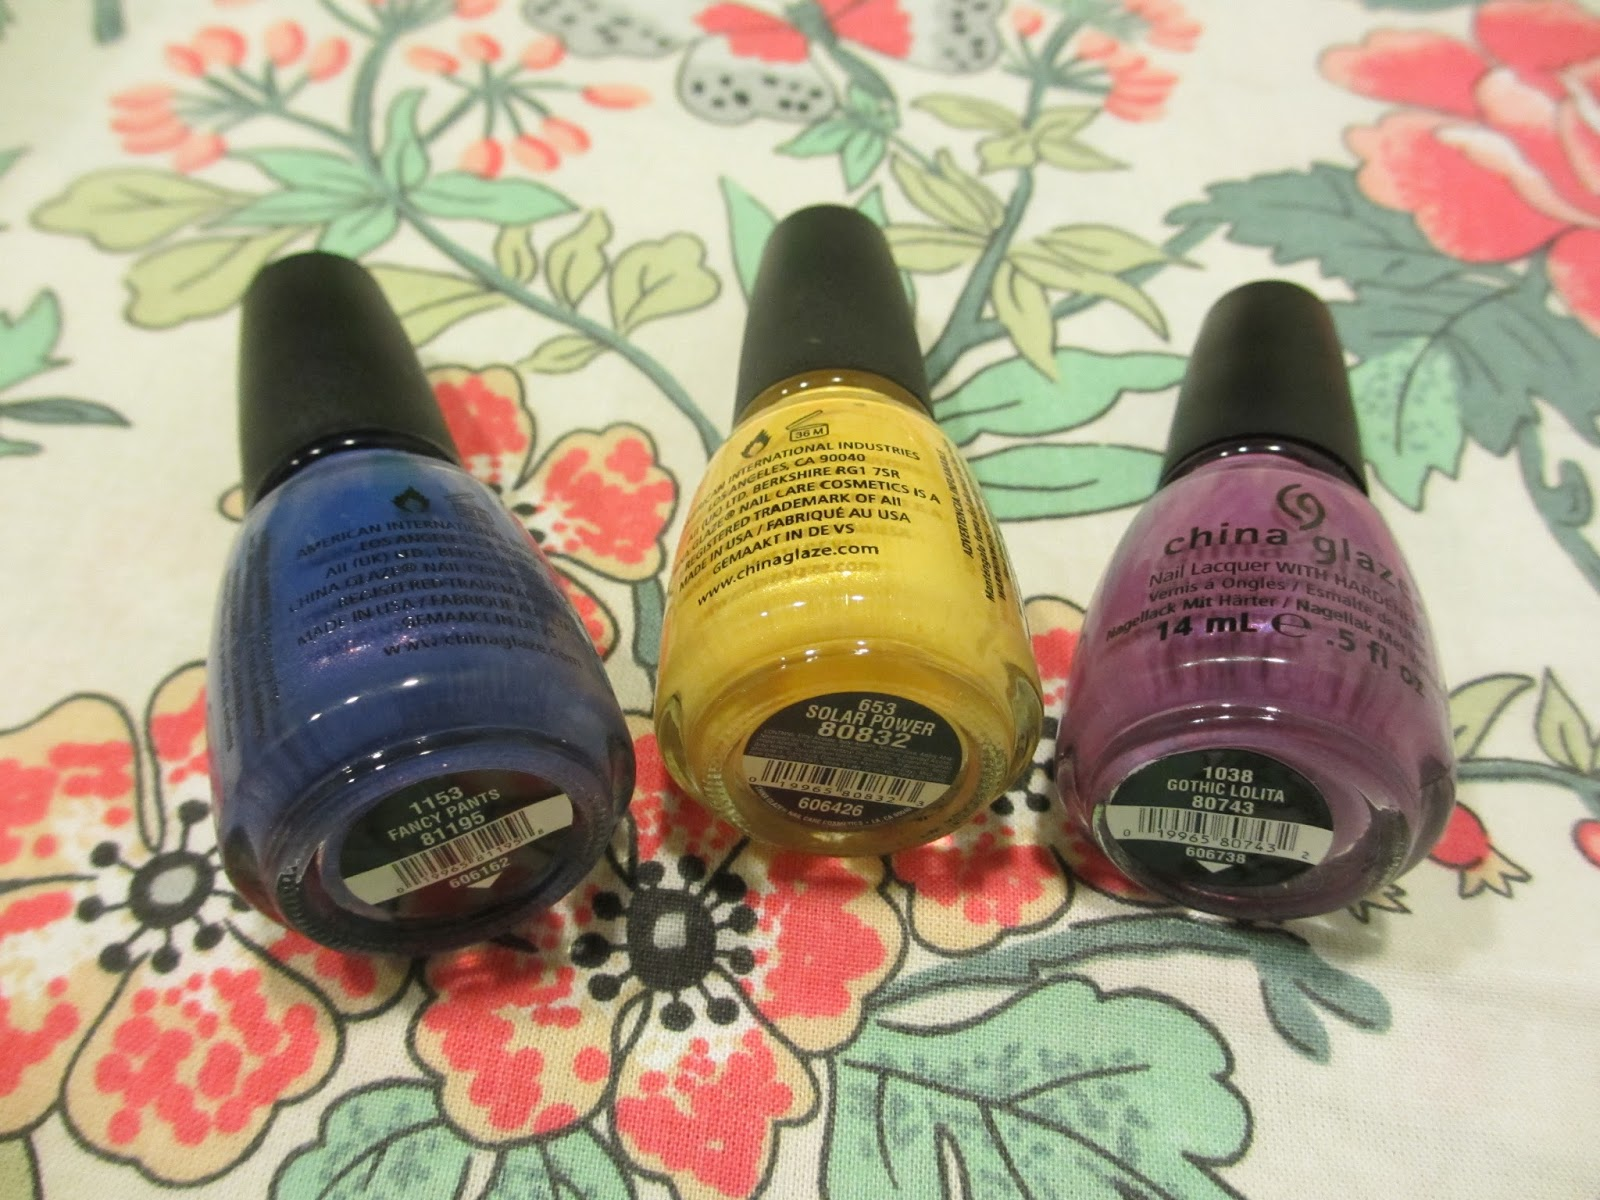 china glaze nail art pansies